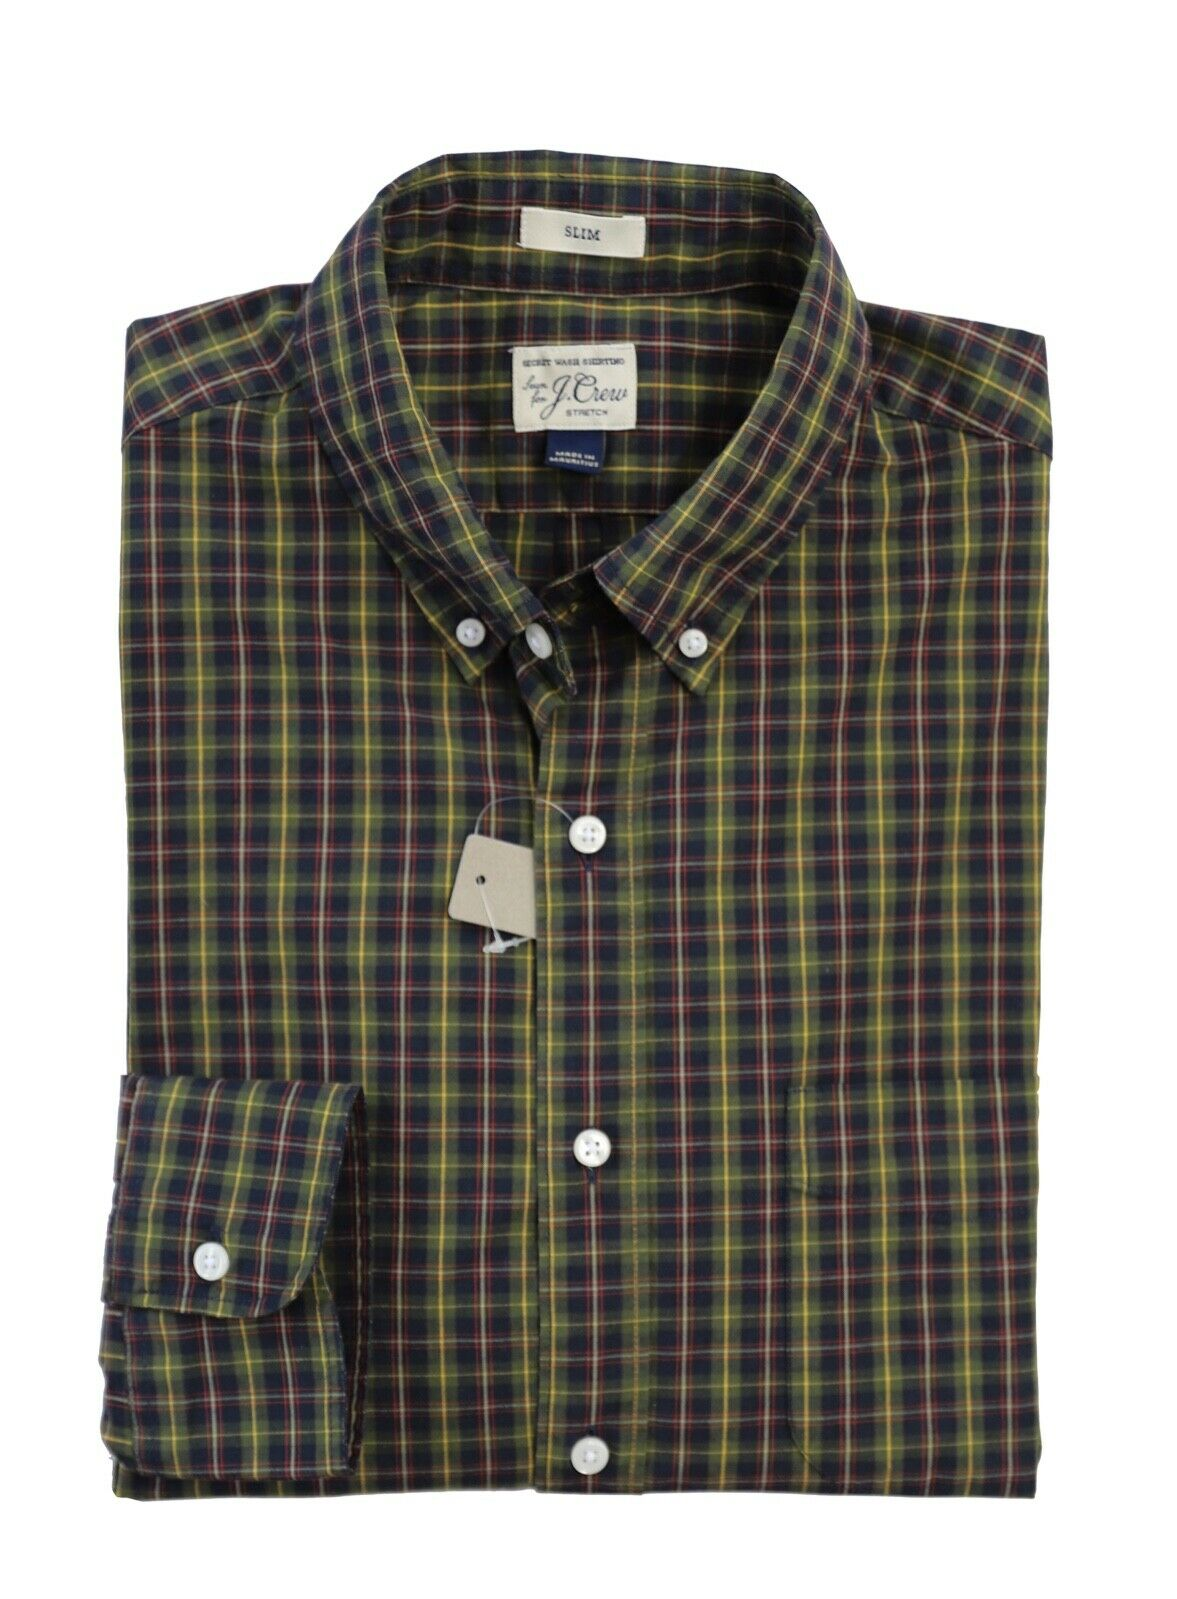 J.Crew - Men's XXL Slim Fit - NWT - Green Multi Plaid Cotton Stretch Shirt